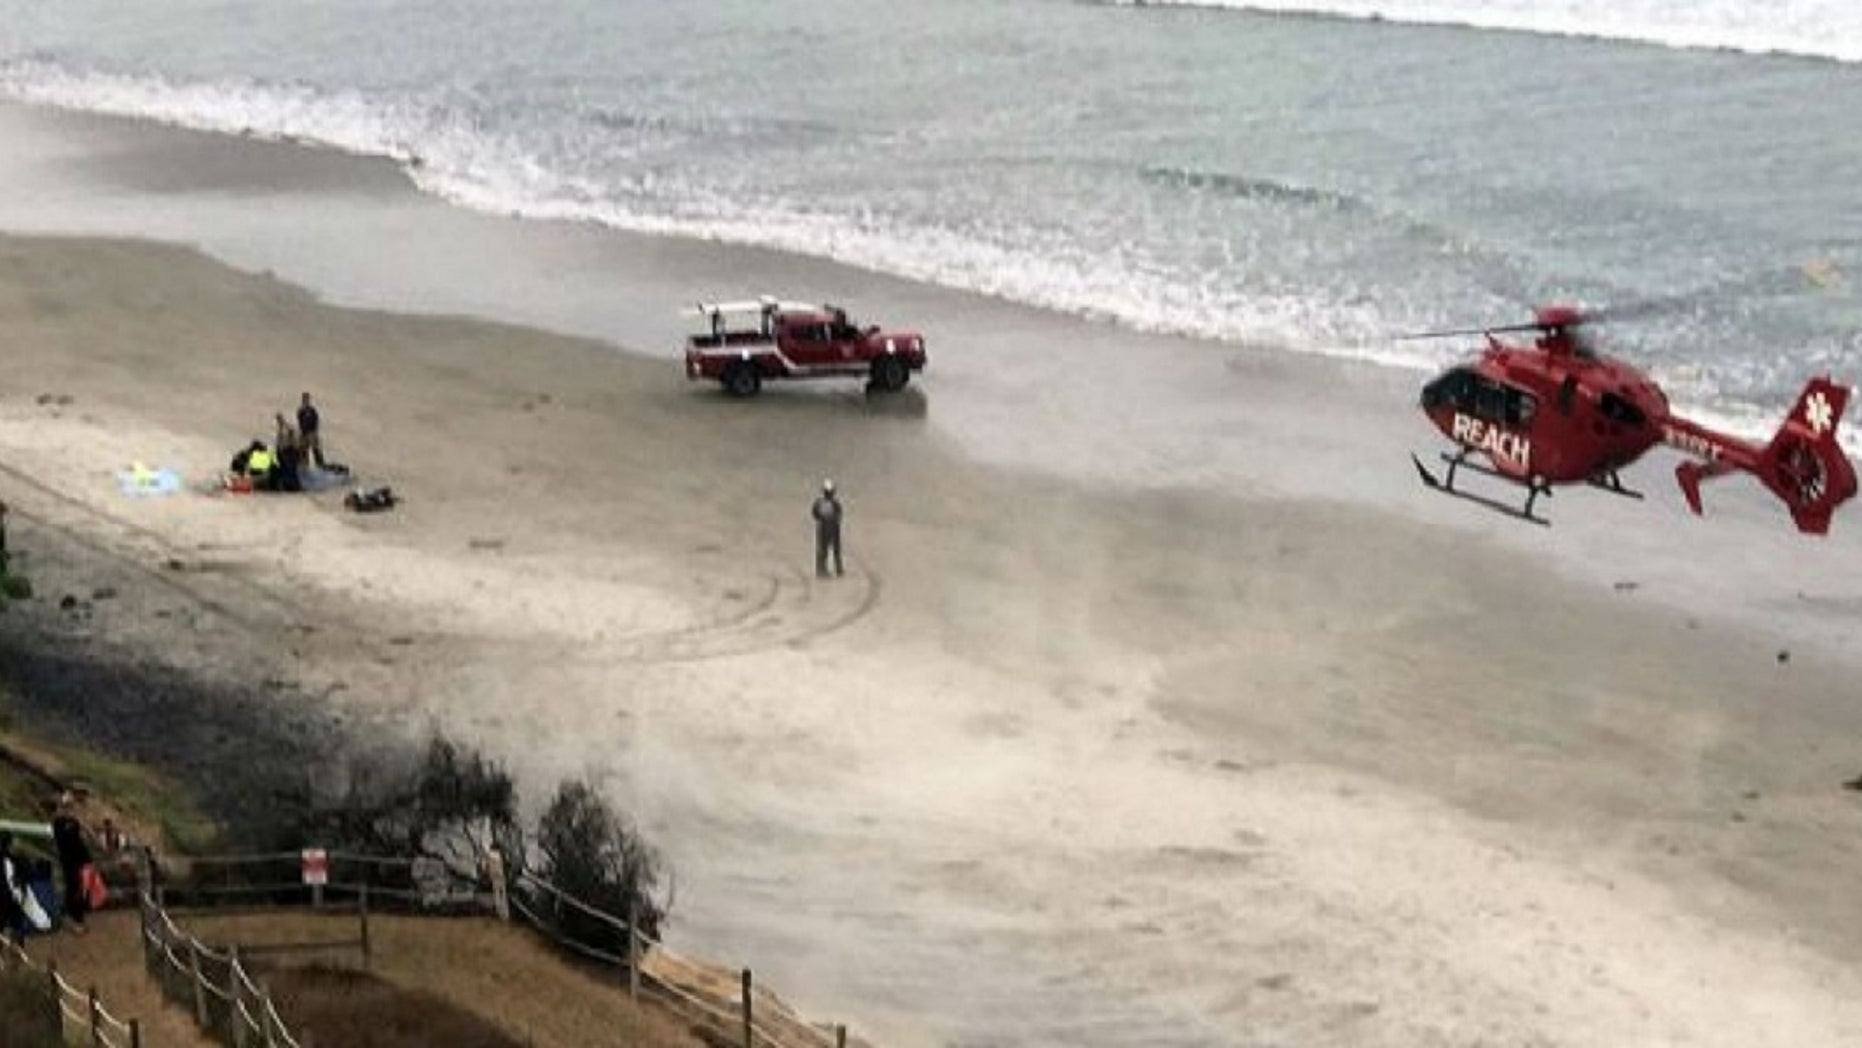 A teenage boy was attacked at sea by a shark in Encinitas, Calif. on Sept. 29.